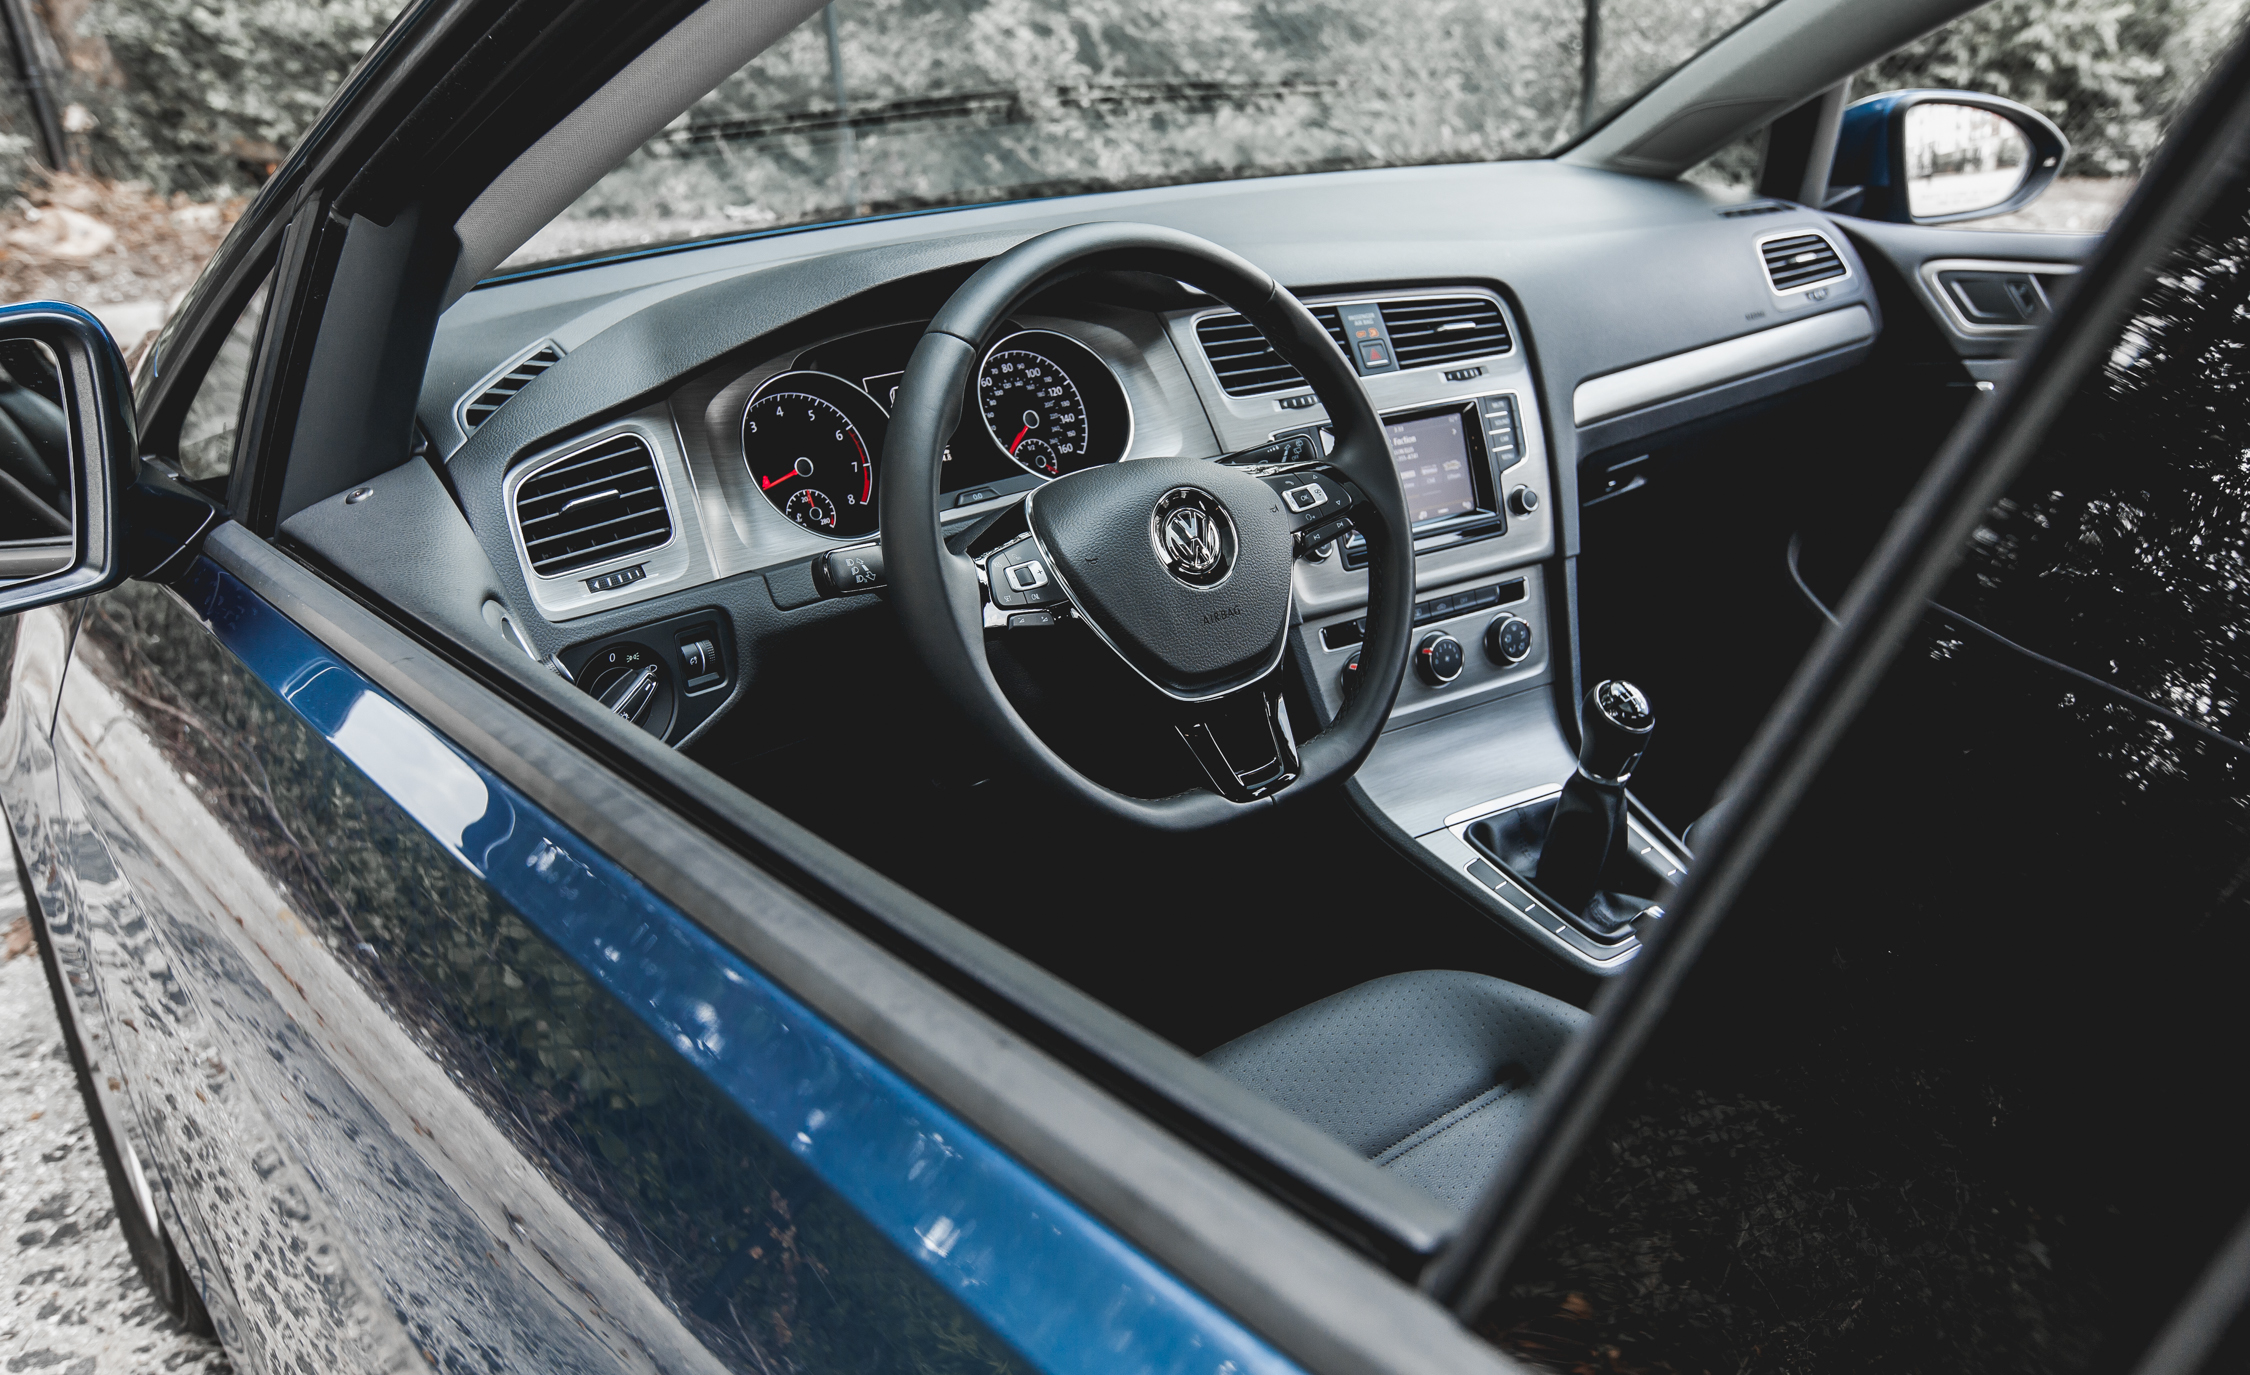 2015 Volkswagen Golf TSI Interior Cockpit